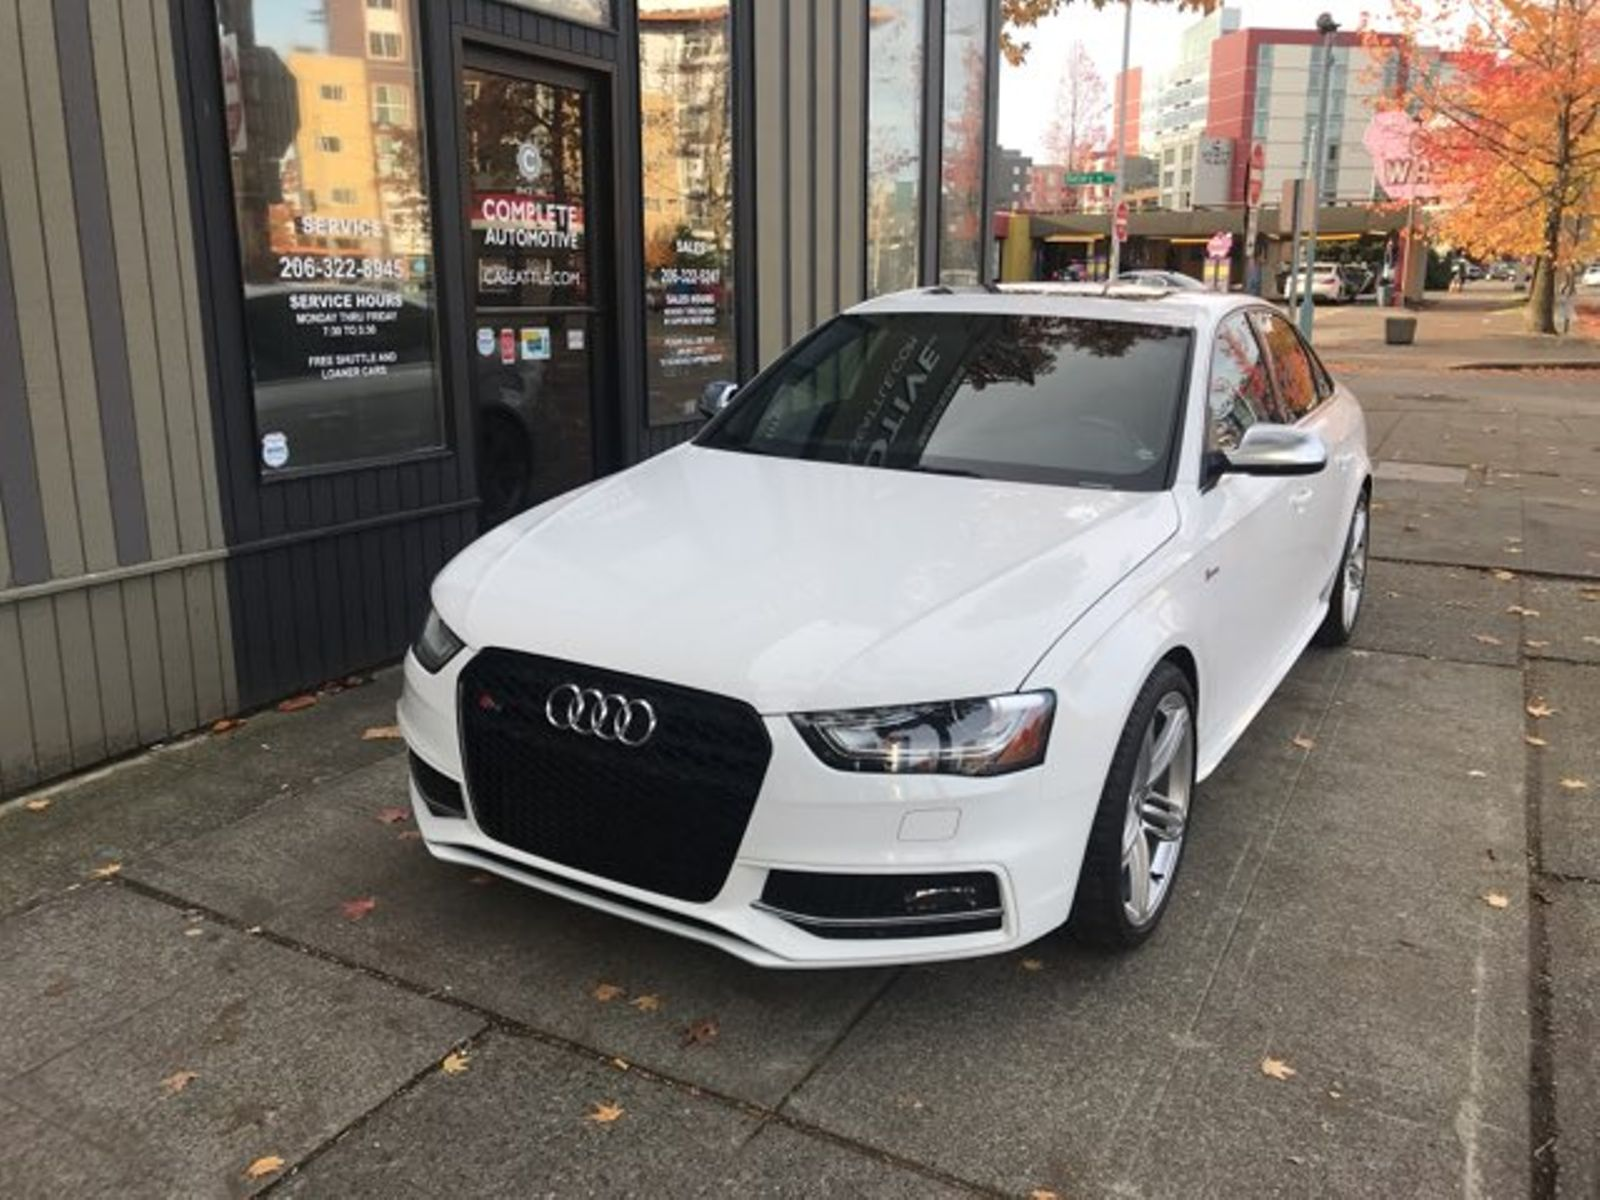 2014 audi s4 quattro premium plus supercharged 350 hp navigation 2014 audi s4 quattro premium plus supercharged 350 hp navigation rear camera bang olufsen 19 alloys sciox Images